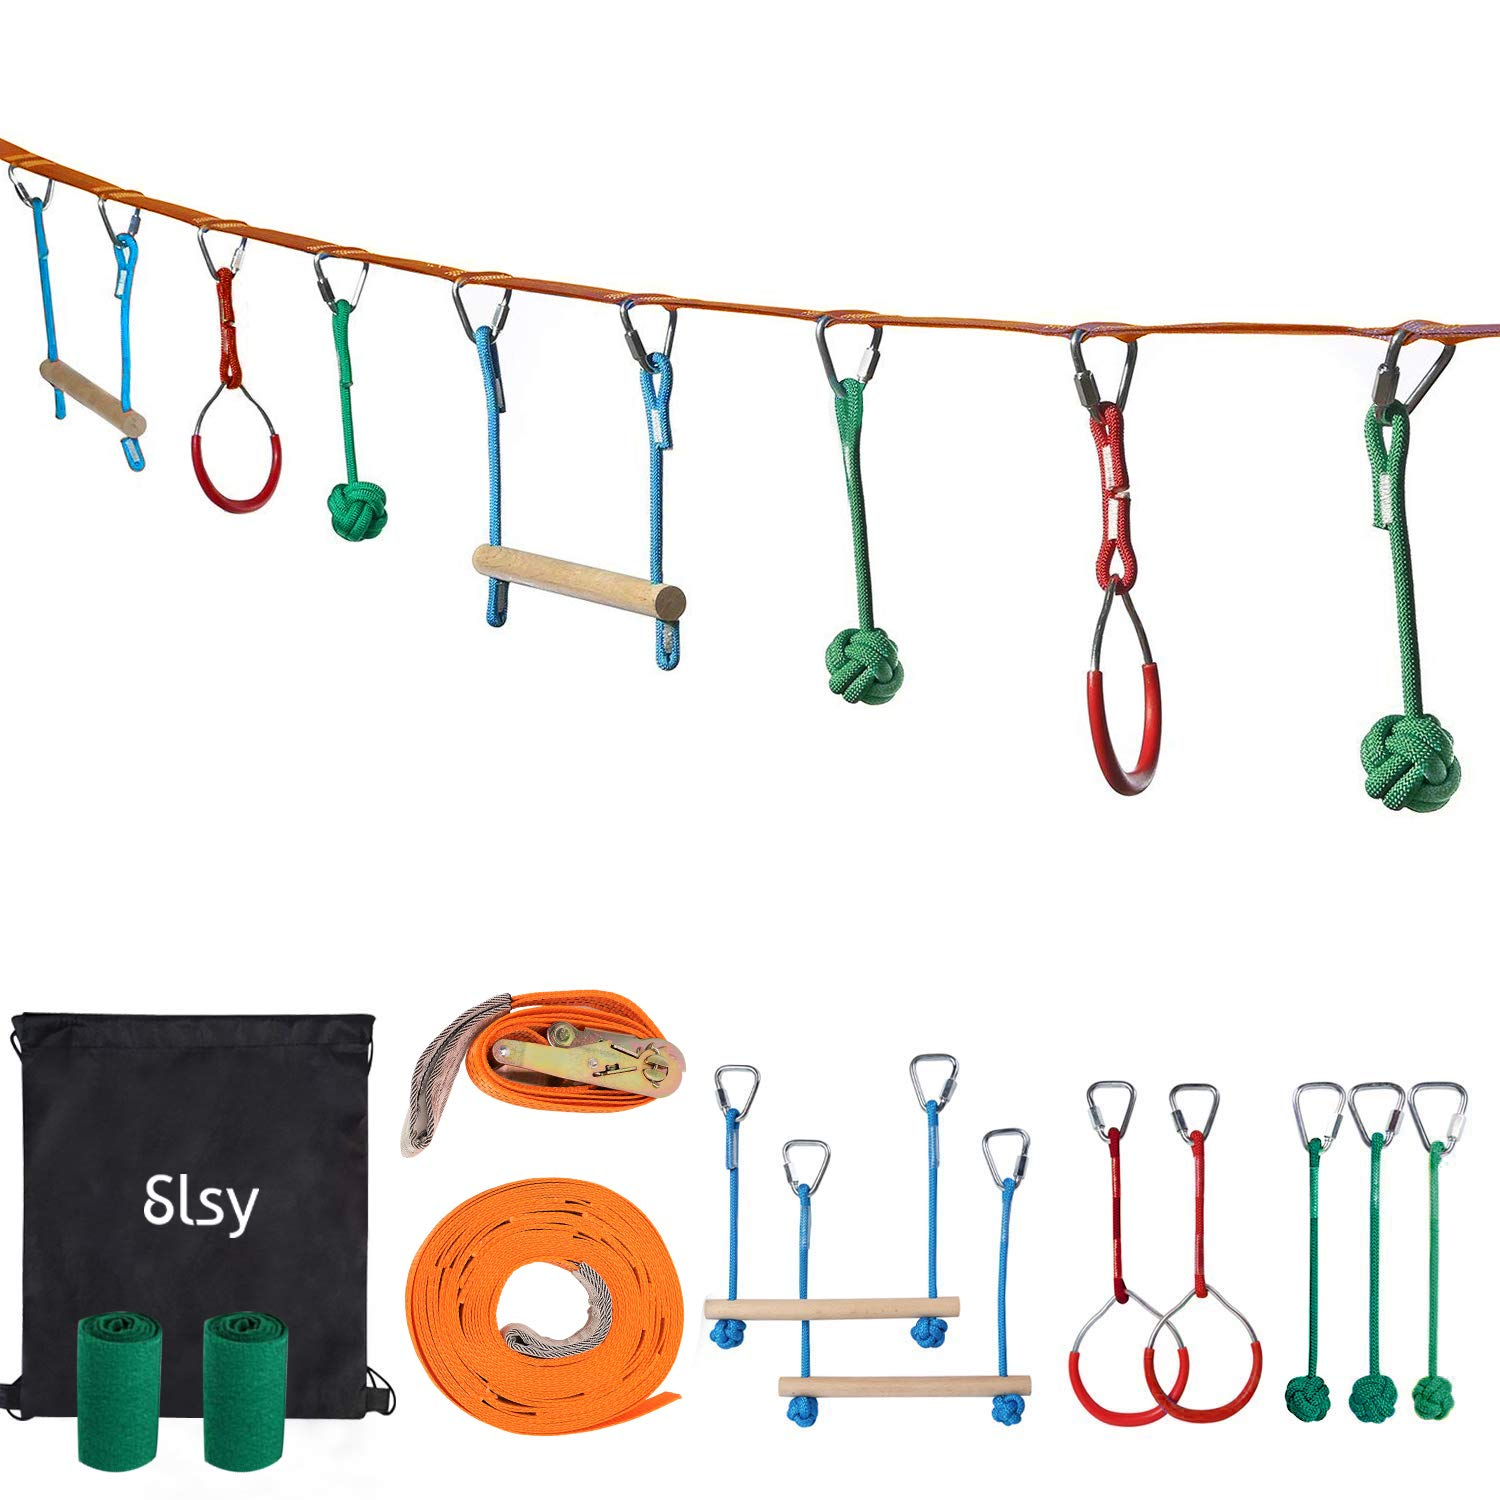 Slsy Ninja line Monkey Bar Kit 40 Foot, Kids Slackline Hanging Obstacle Course Set Warrior Training Equipment for Backyard Outdoor Playground, with Gym Rings, 440lb Capacity, Carrying Bag by Slsy